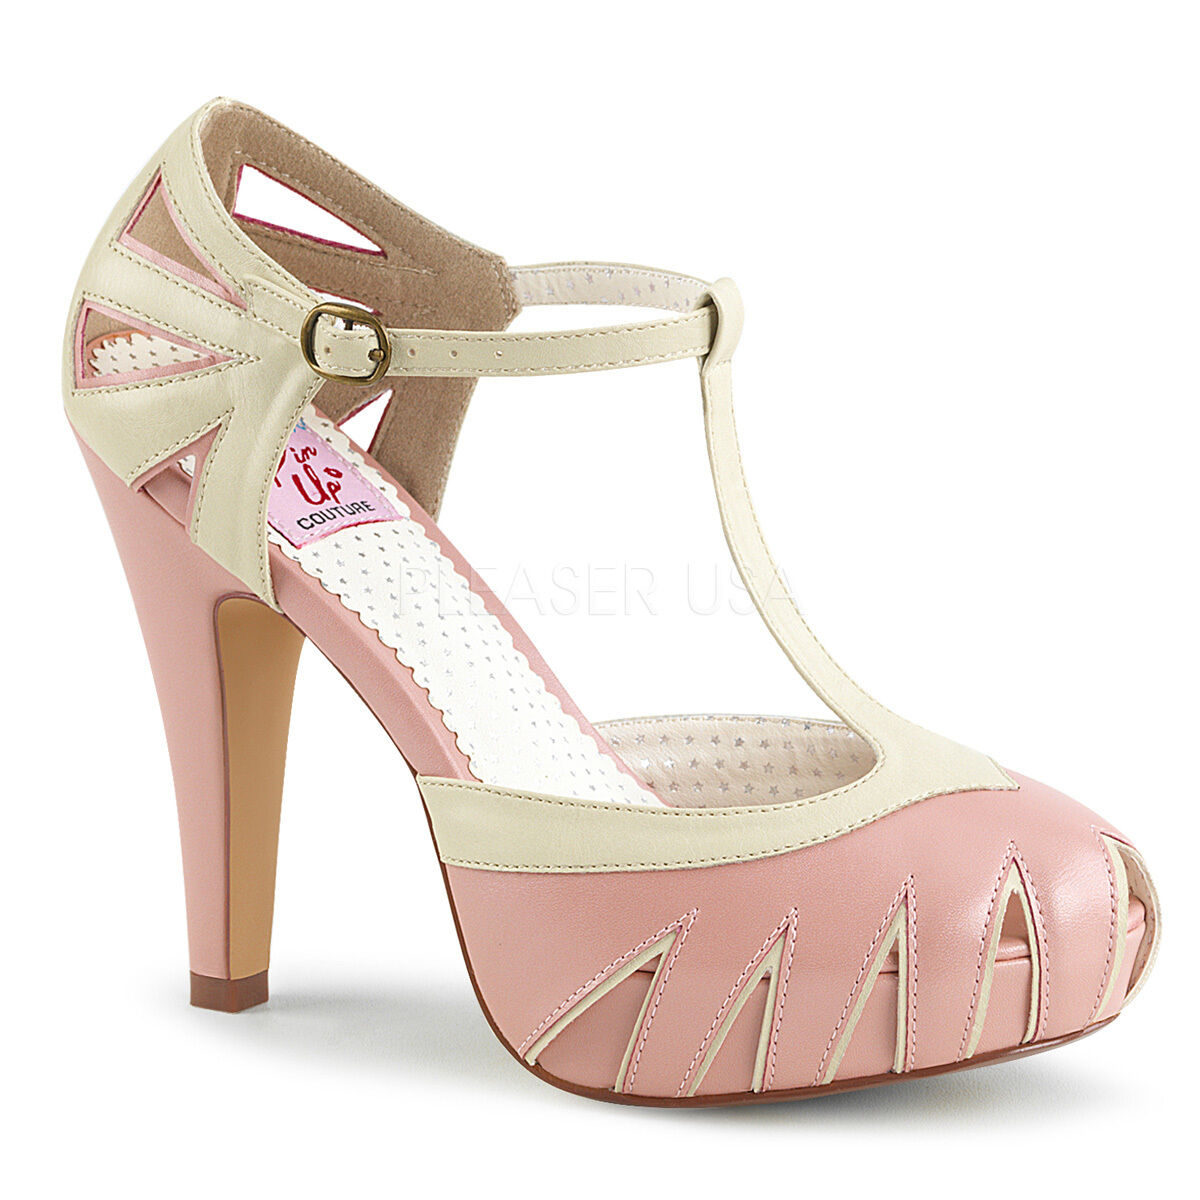 PINUP BETTIE-25 Sexy 4 1 2  Heel Pinup Retro Baby Pink T-Strap Pumps Women shoes